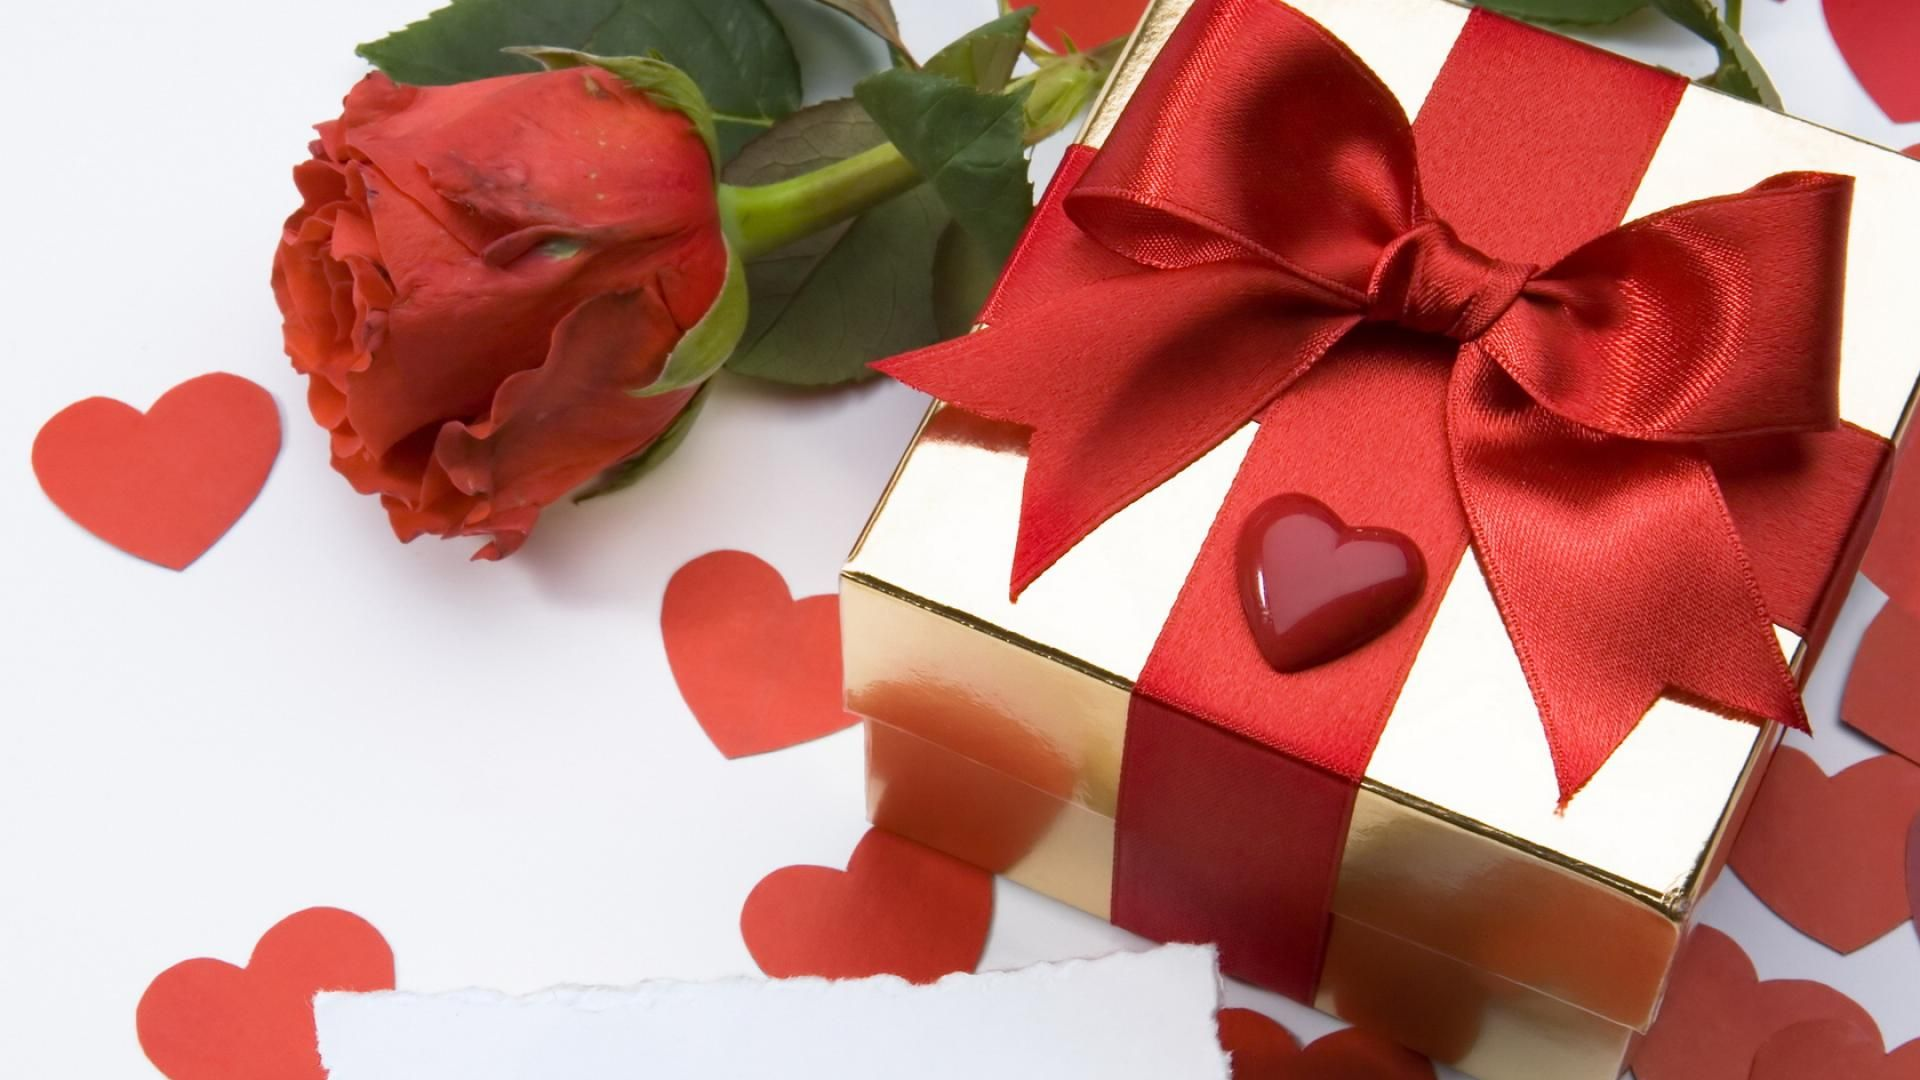 Send flowers in karachi to their dearest and lover one by online send flowers in karachi to their dearest and lover one by online karachi gifts give izmirmasajfo